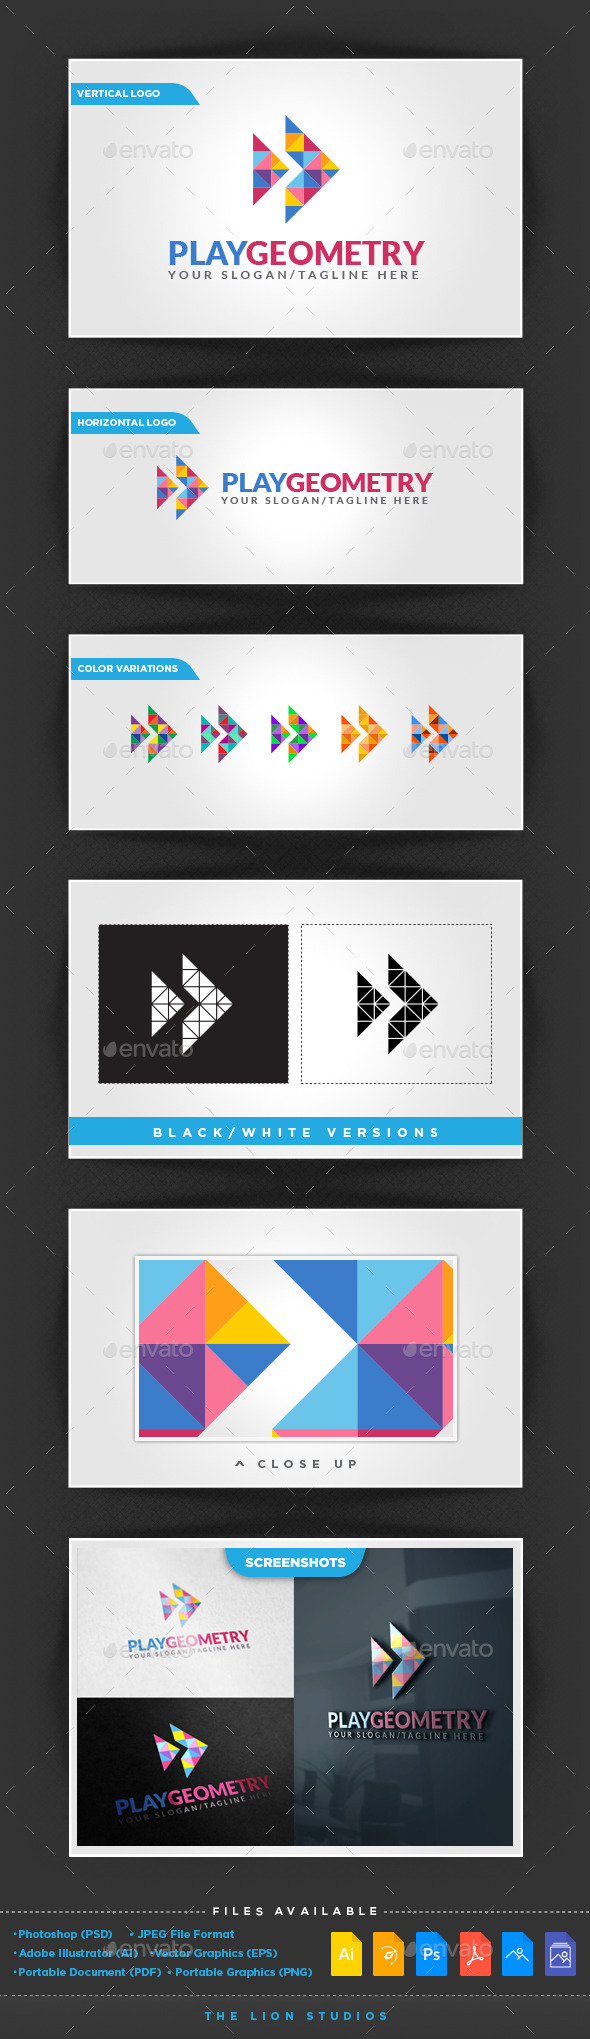 Play Geometry  - Abstract Logo Templates